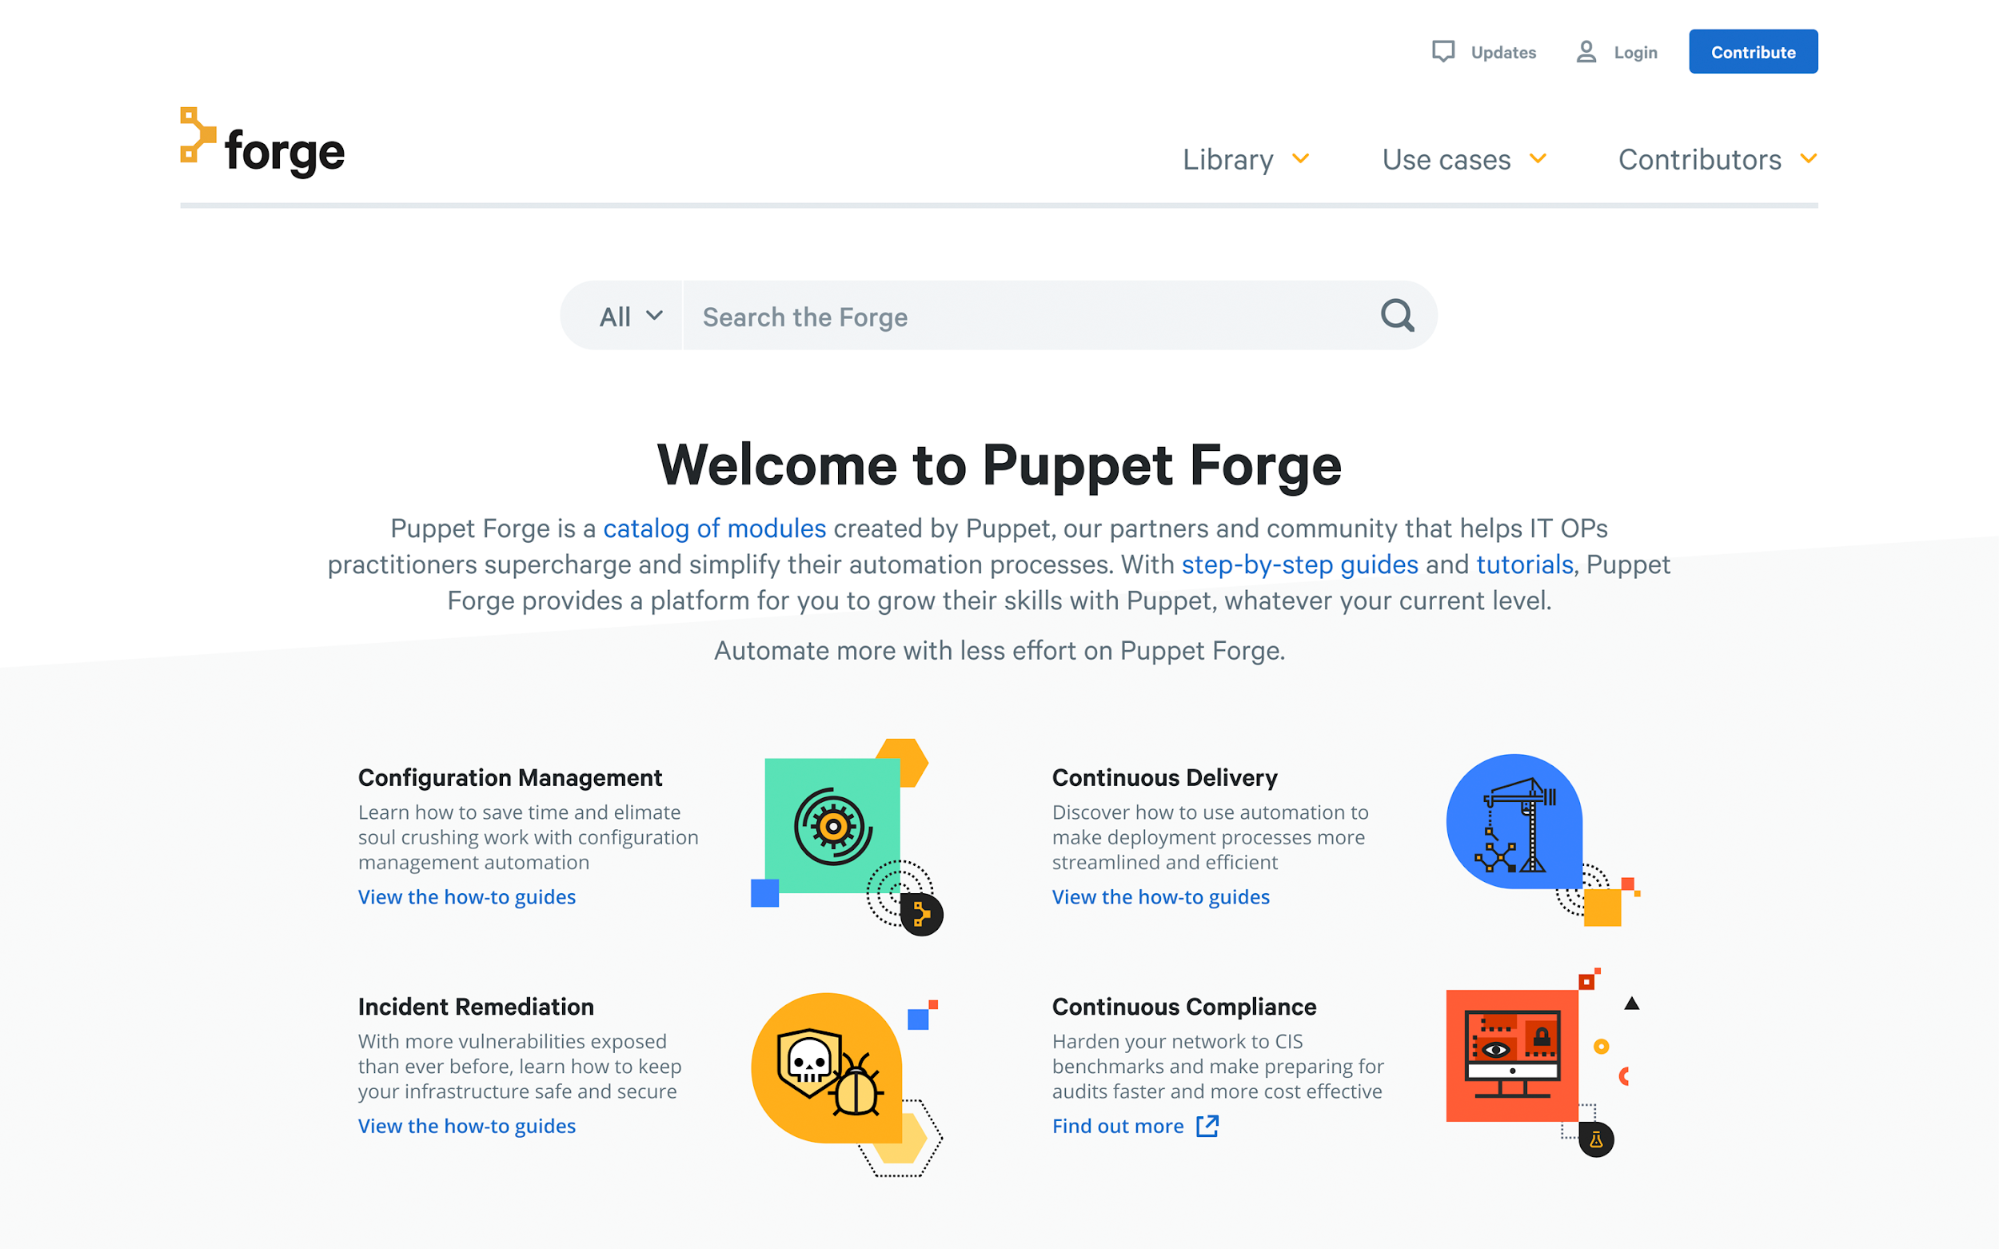 Information hierarchy on Puppet Forge